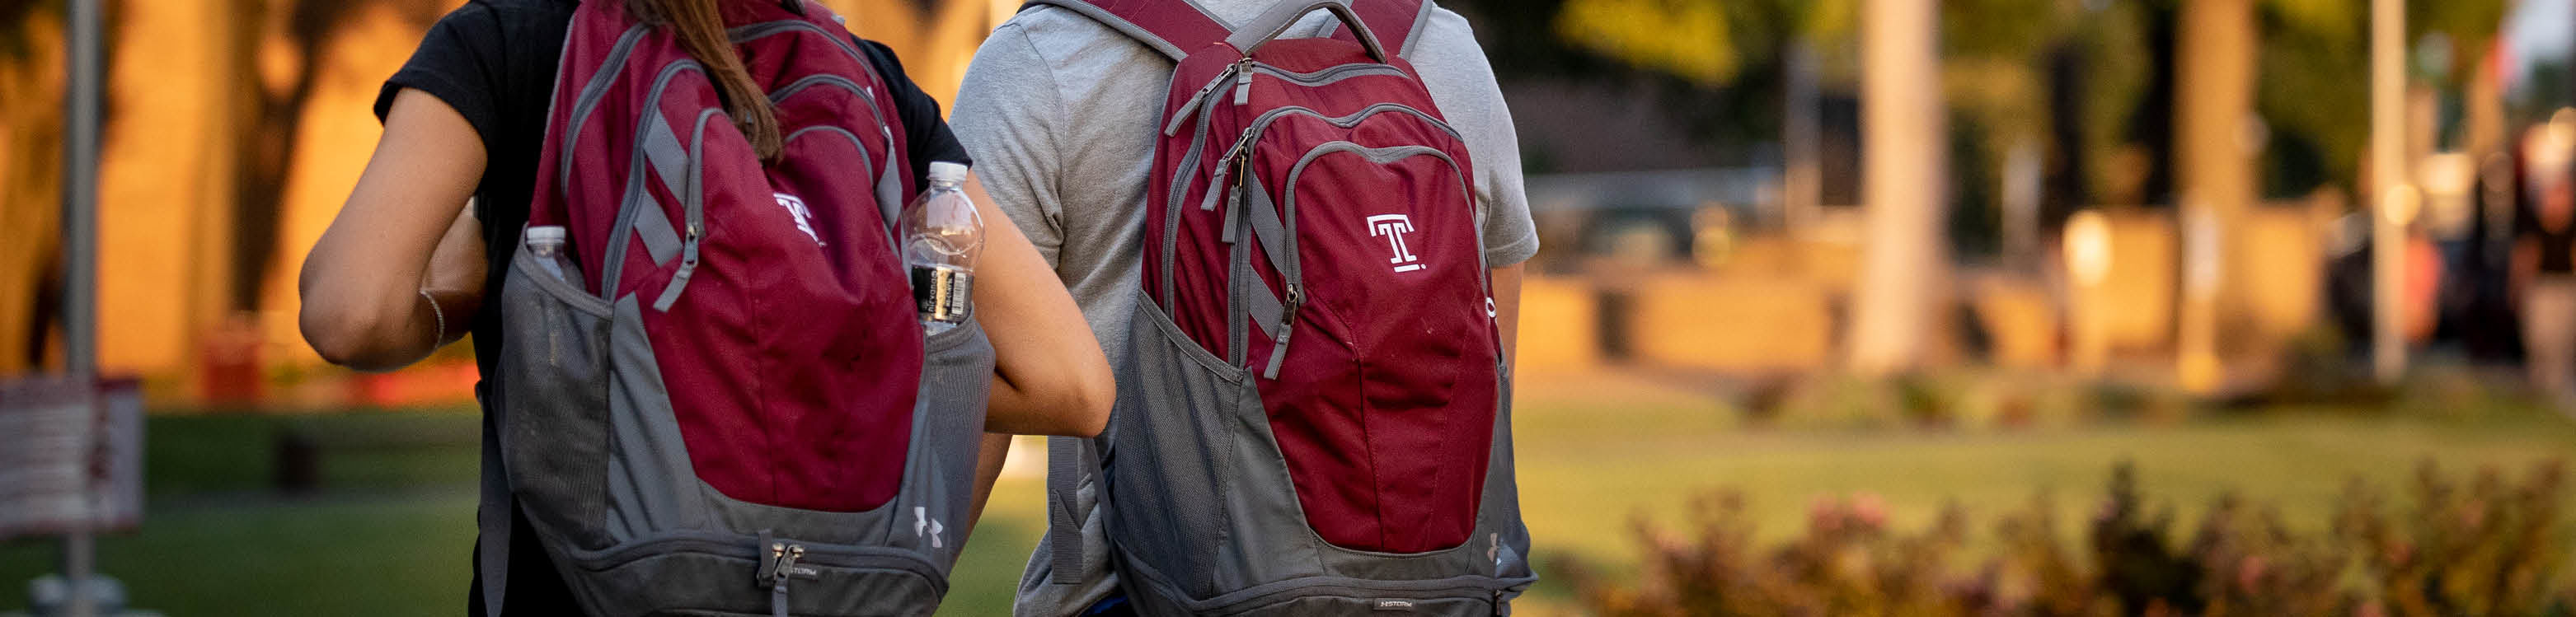 2 students walking on campus, close up of their Temple T backpacks